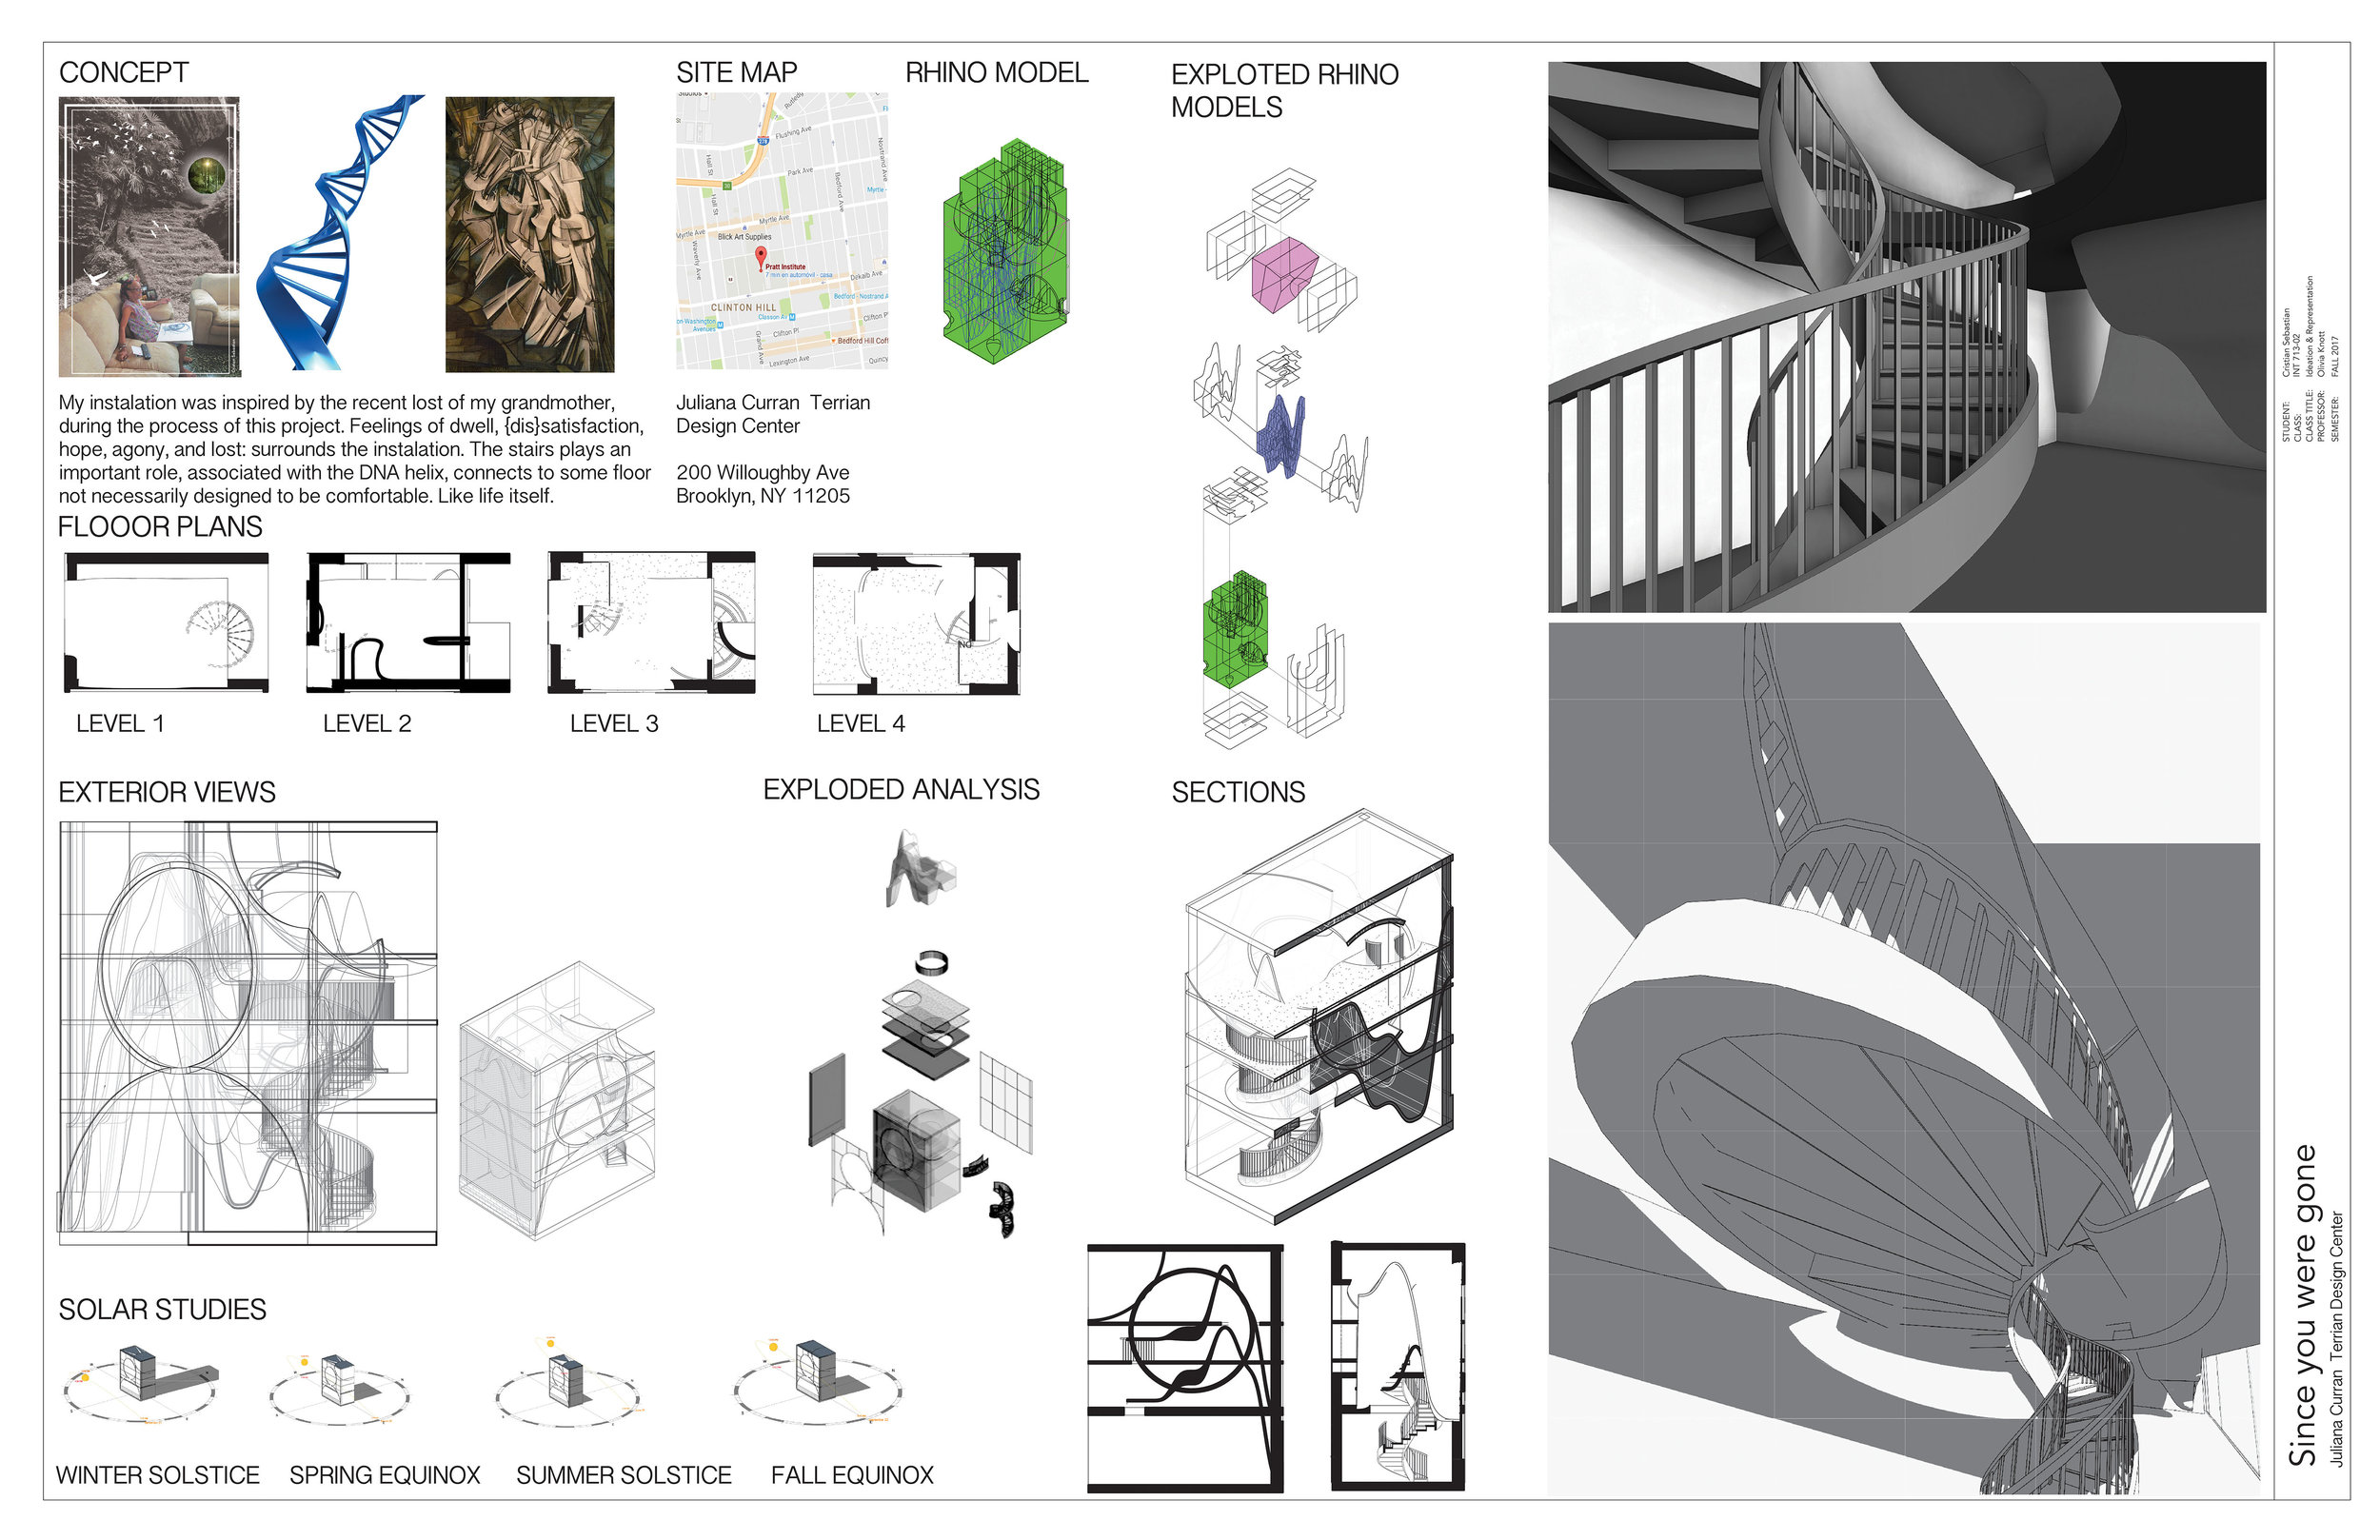 From Rhino to Revit, step 2